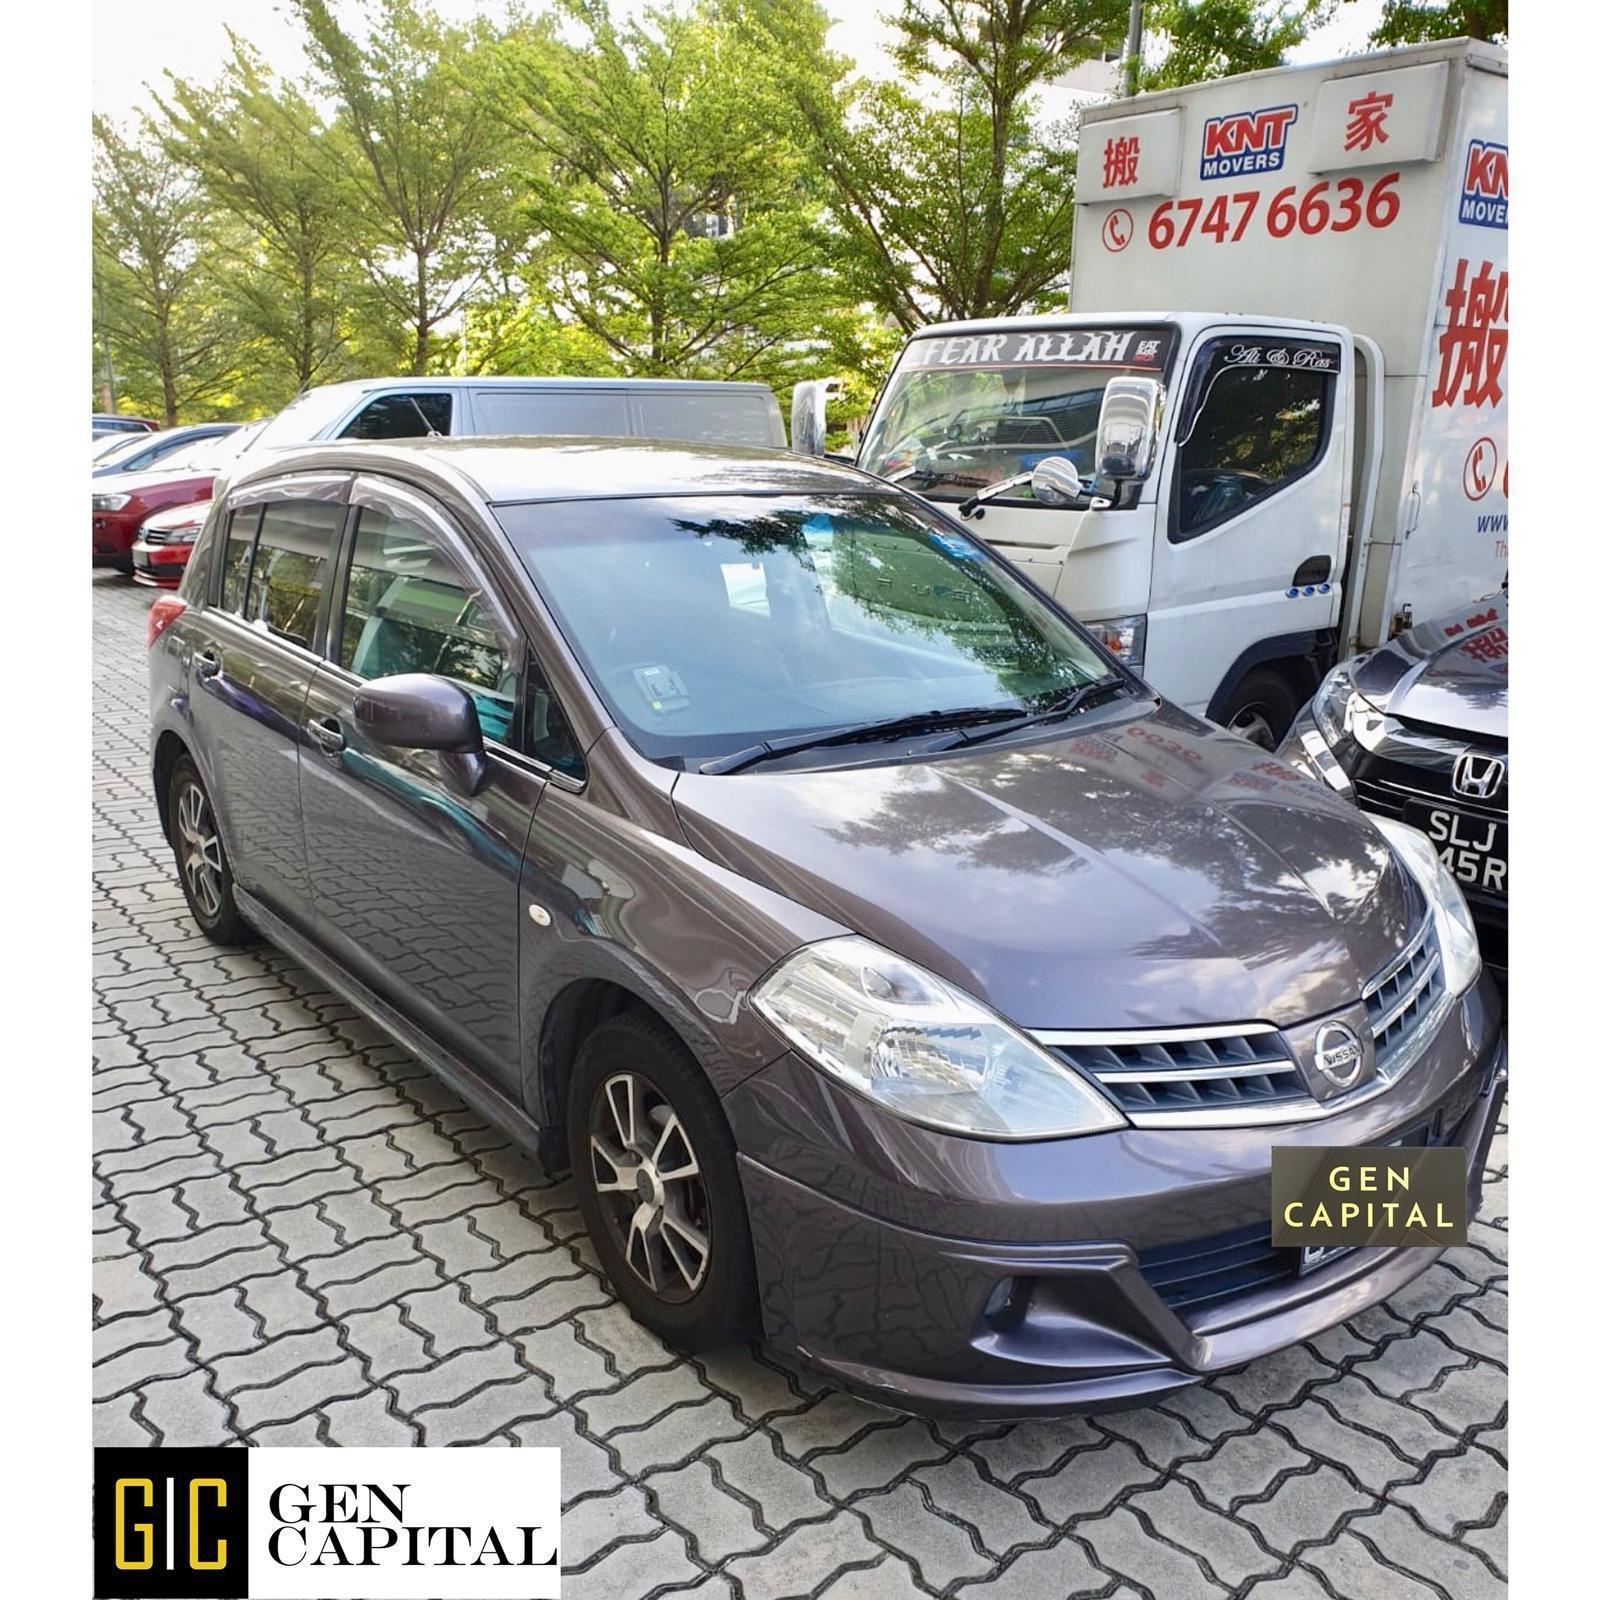 Nissan Latio 1.5A - Cheapest rental in town, full support!